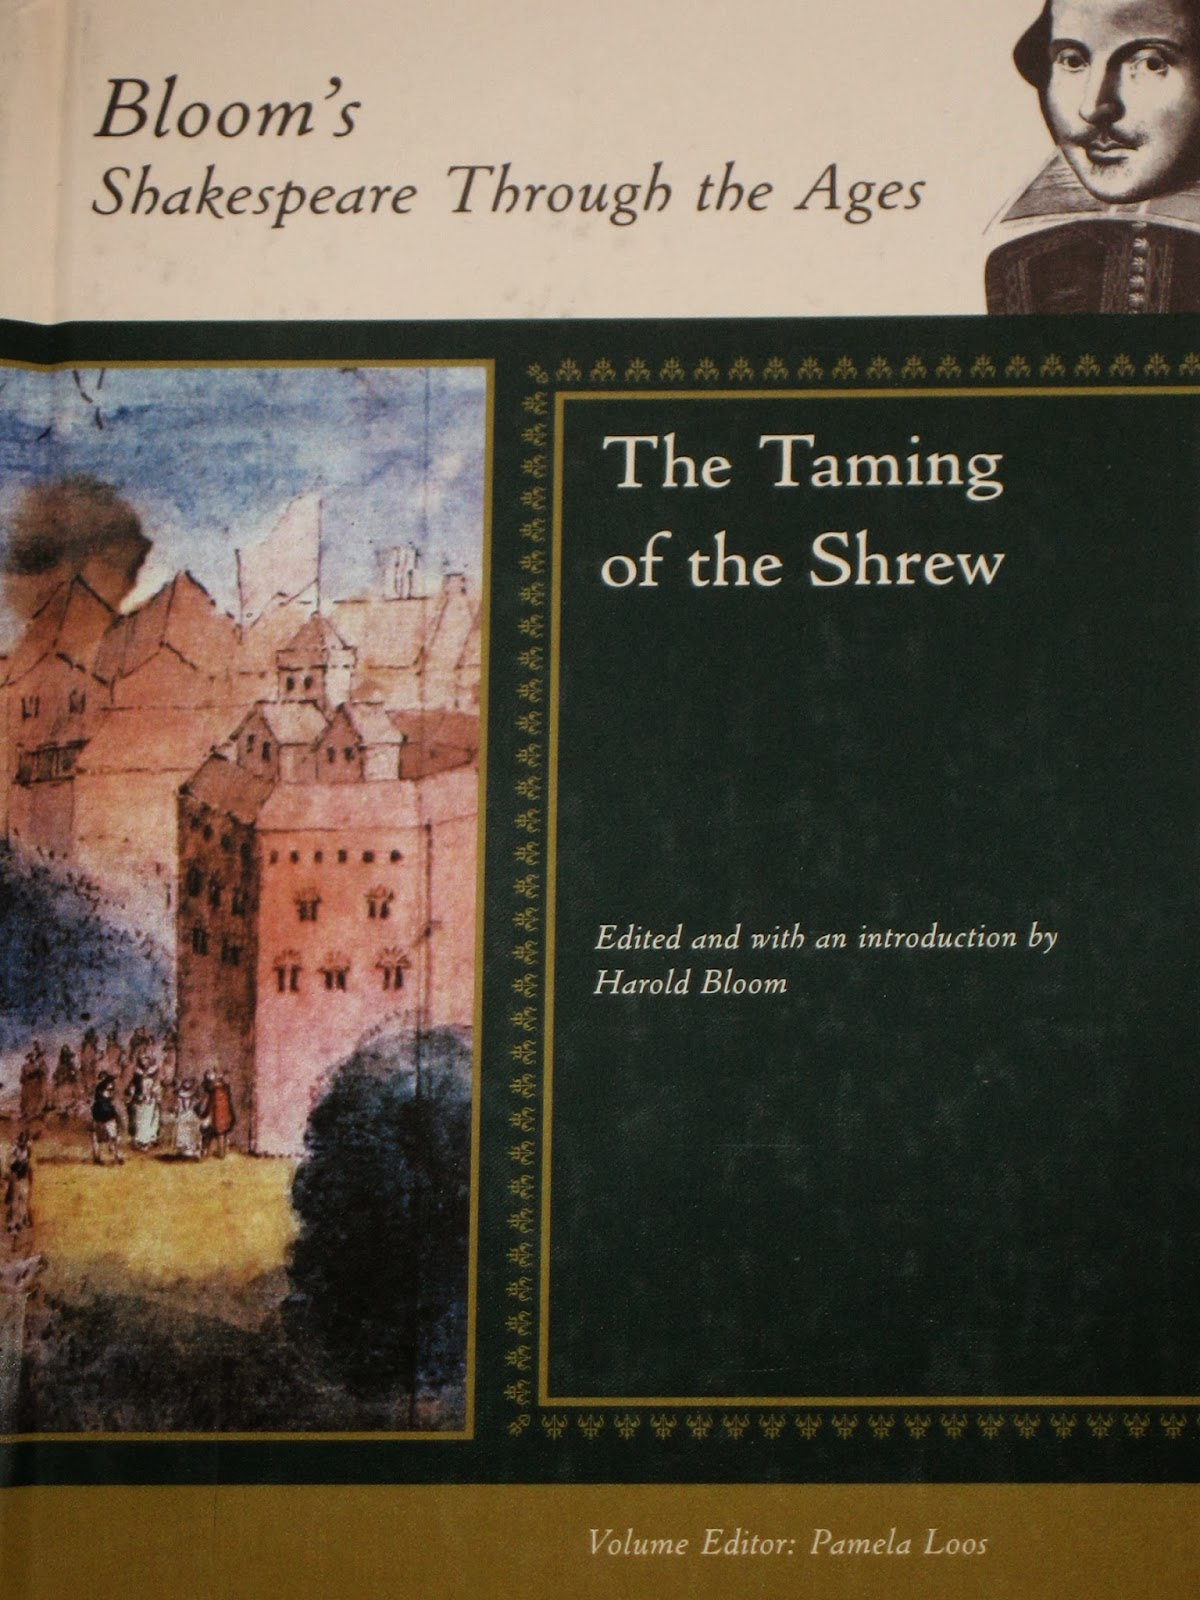 the taming of the shrew by shakespeare petruchios disguise and identity There are also more serious aspects of disguise which shakespeare plays on in his while the taming of the shrew is a comedy which uses disguise and duplicity.